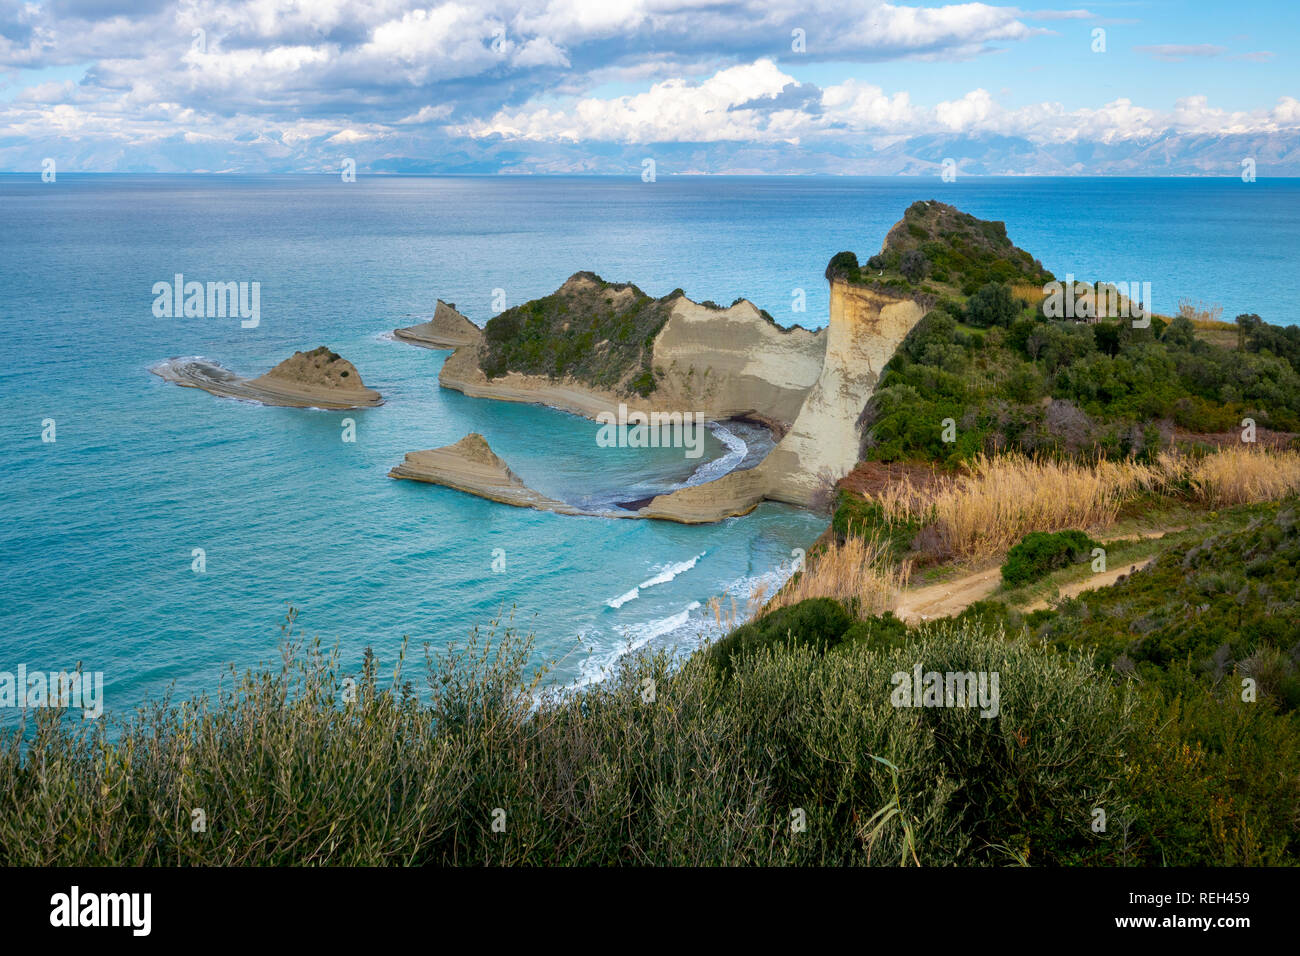 europe-greece-corfu-cape-drastis-at-the-northwestern-most-tip-of-the-greek-island-REH459.jpg